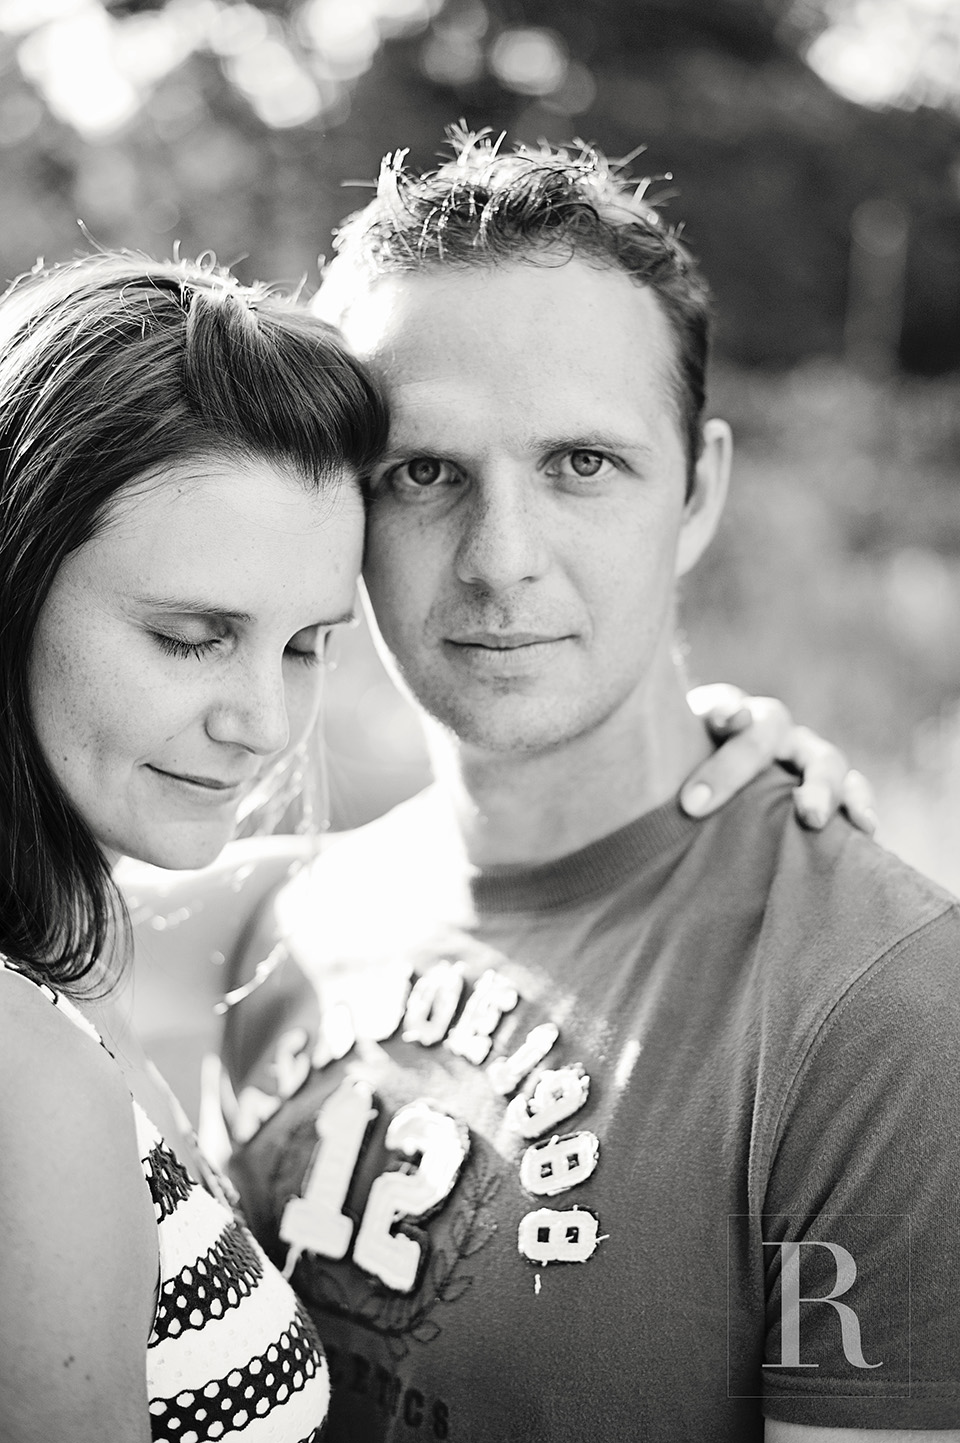 RYAN PARKER PHOTOGRAPHY_ESTEE & BERNARD_ENGAGEMENT SESSION_JOHANNESBURG DSC_1808.jpg